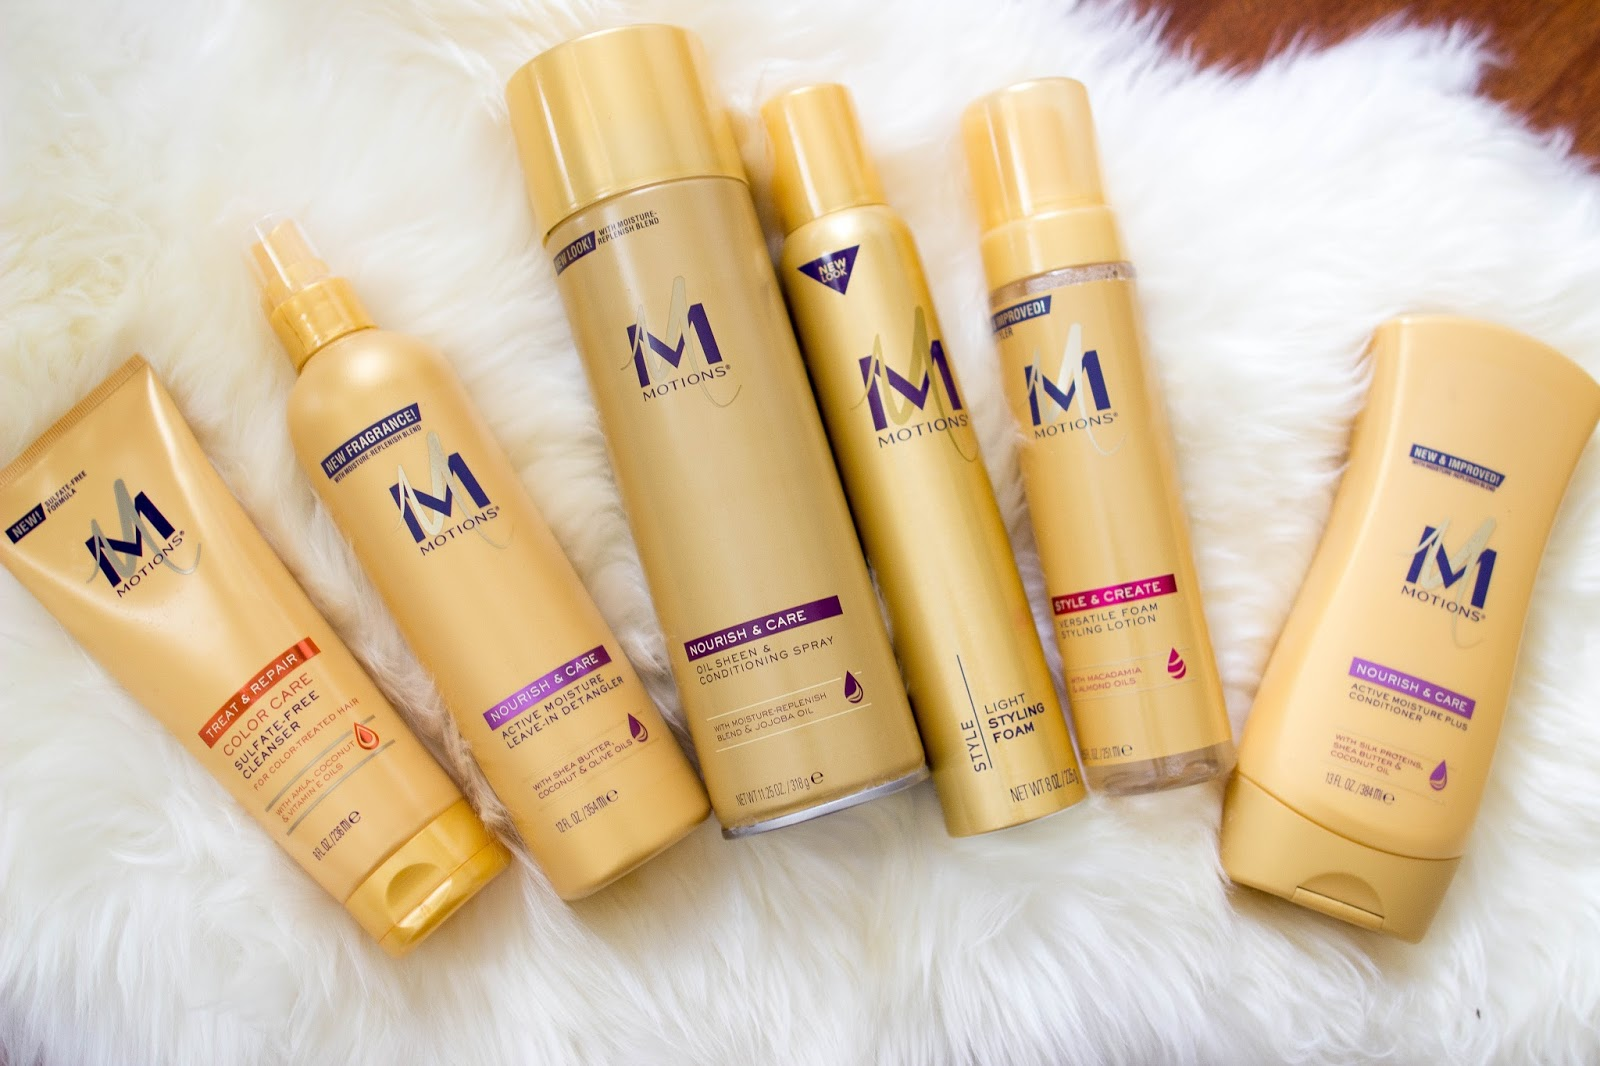 introducing new hair product collection How to market a brand new product within months of its introduction, the snuggie transformed from a virtually unknown product into a pop culture phenomenon.